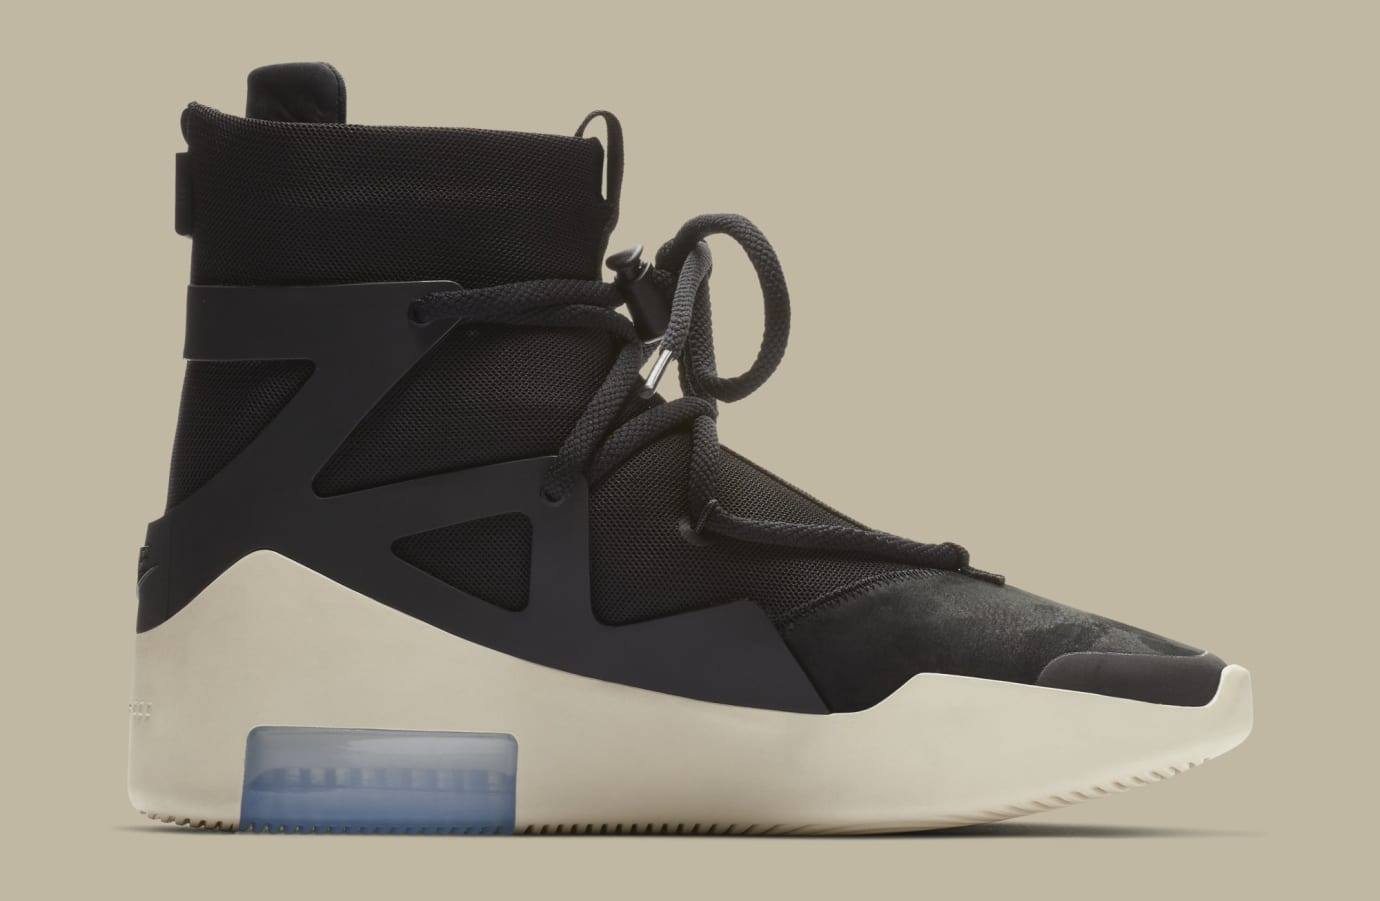 Nike Air Fear of God 1 'Black' AR4237-001 (Medial)